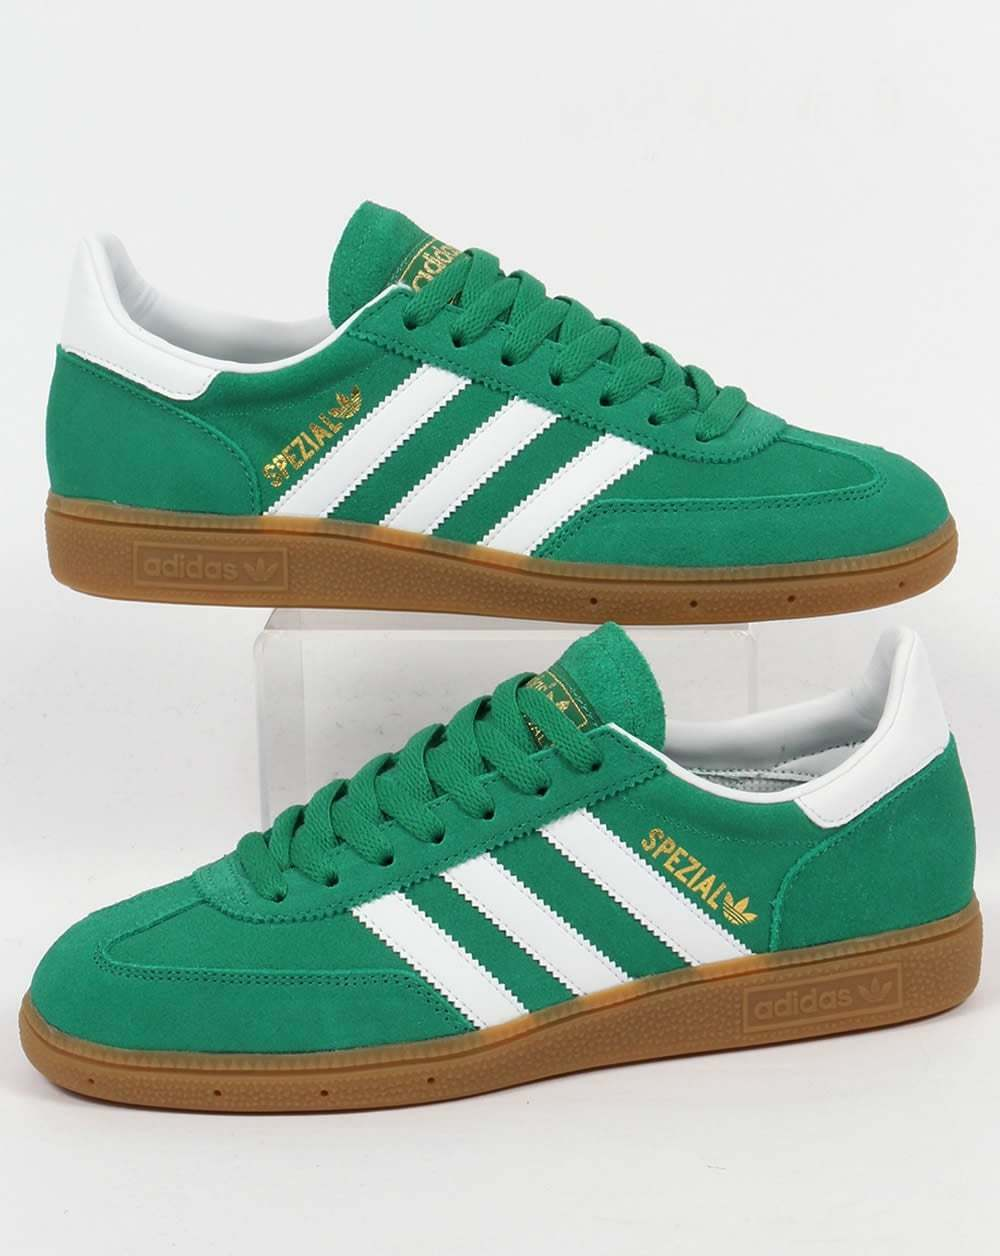 6f3ec5a8ac3e lovely Adidas Originals - Adidas Spezial Trainers in Green   White- suede  gum sole